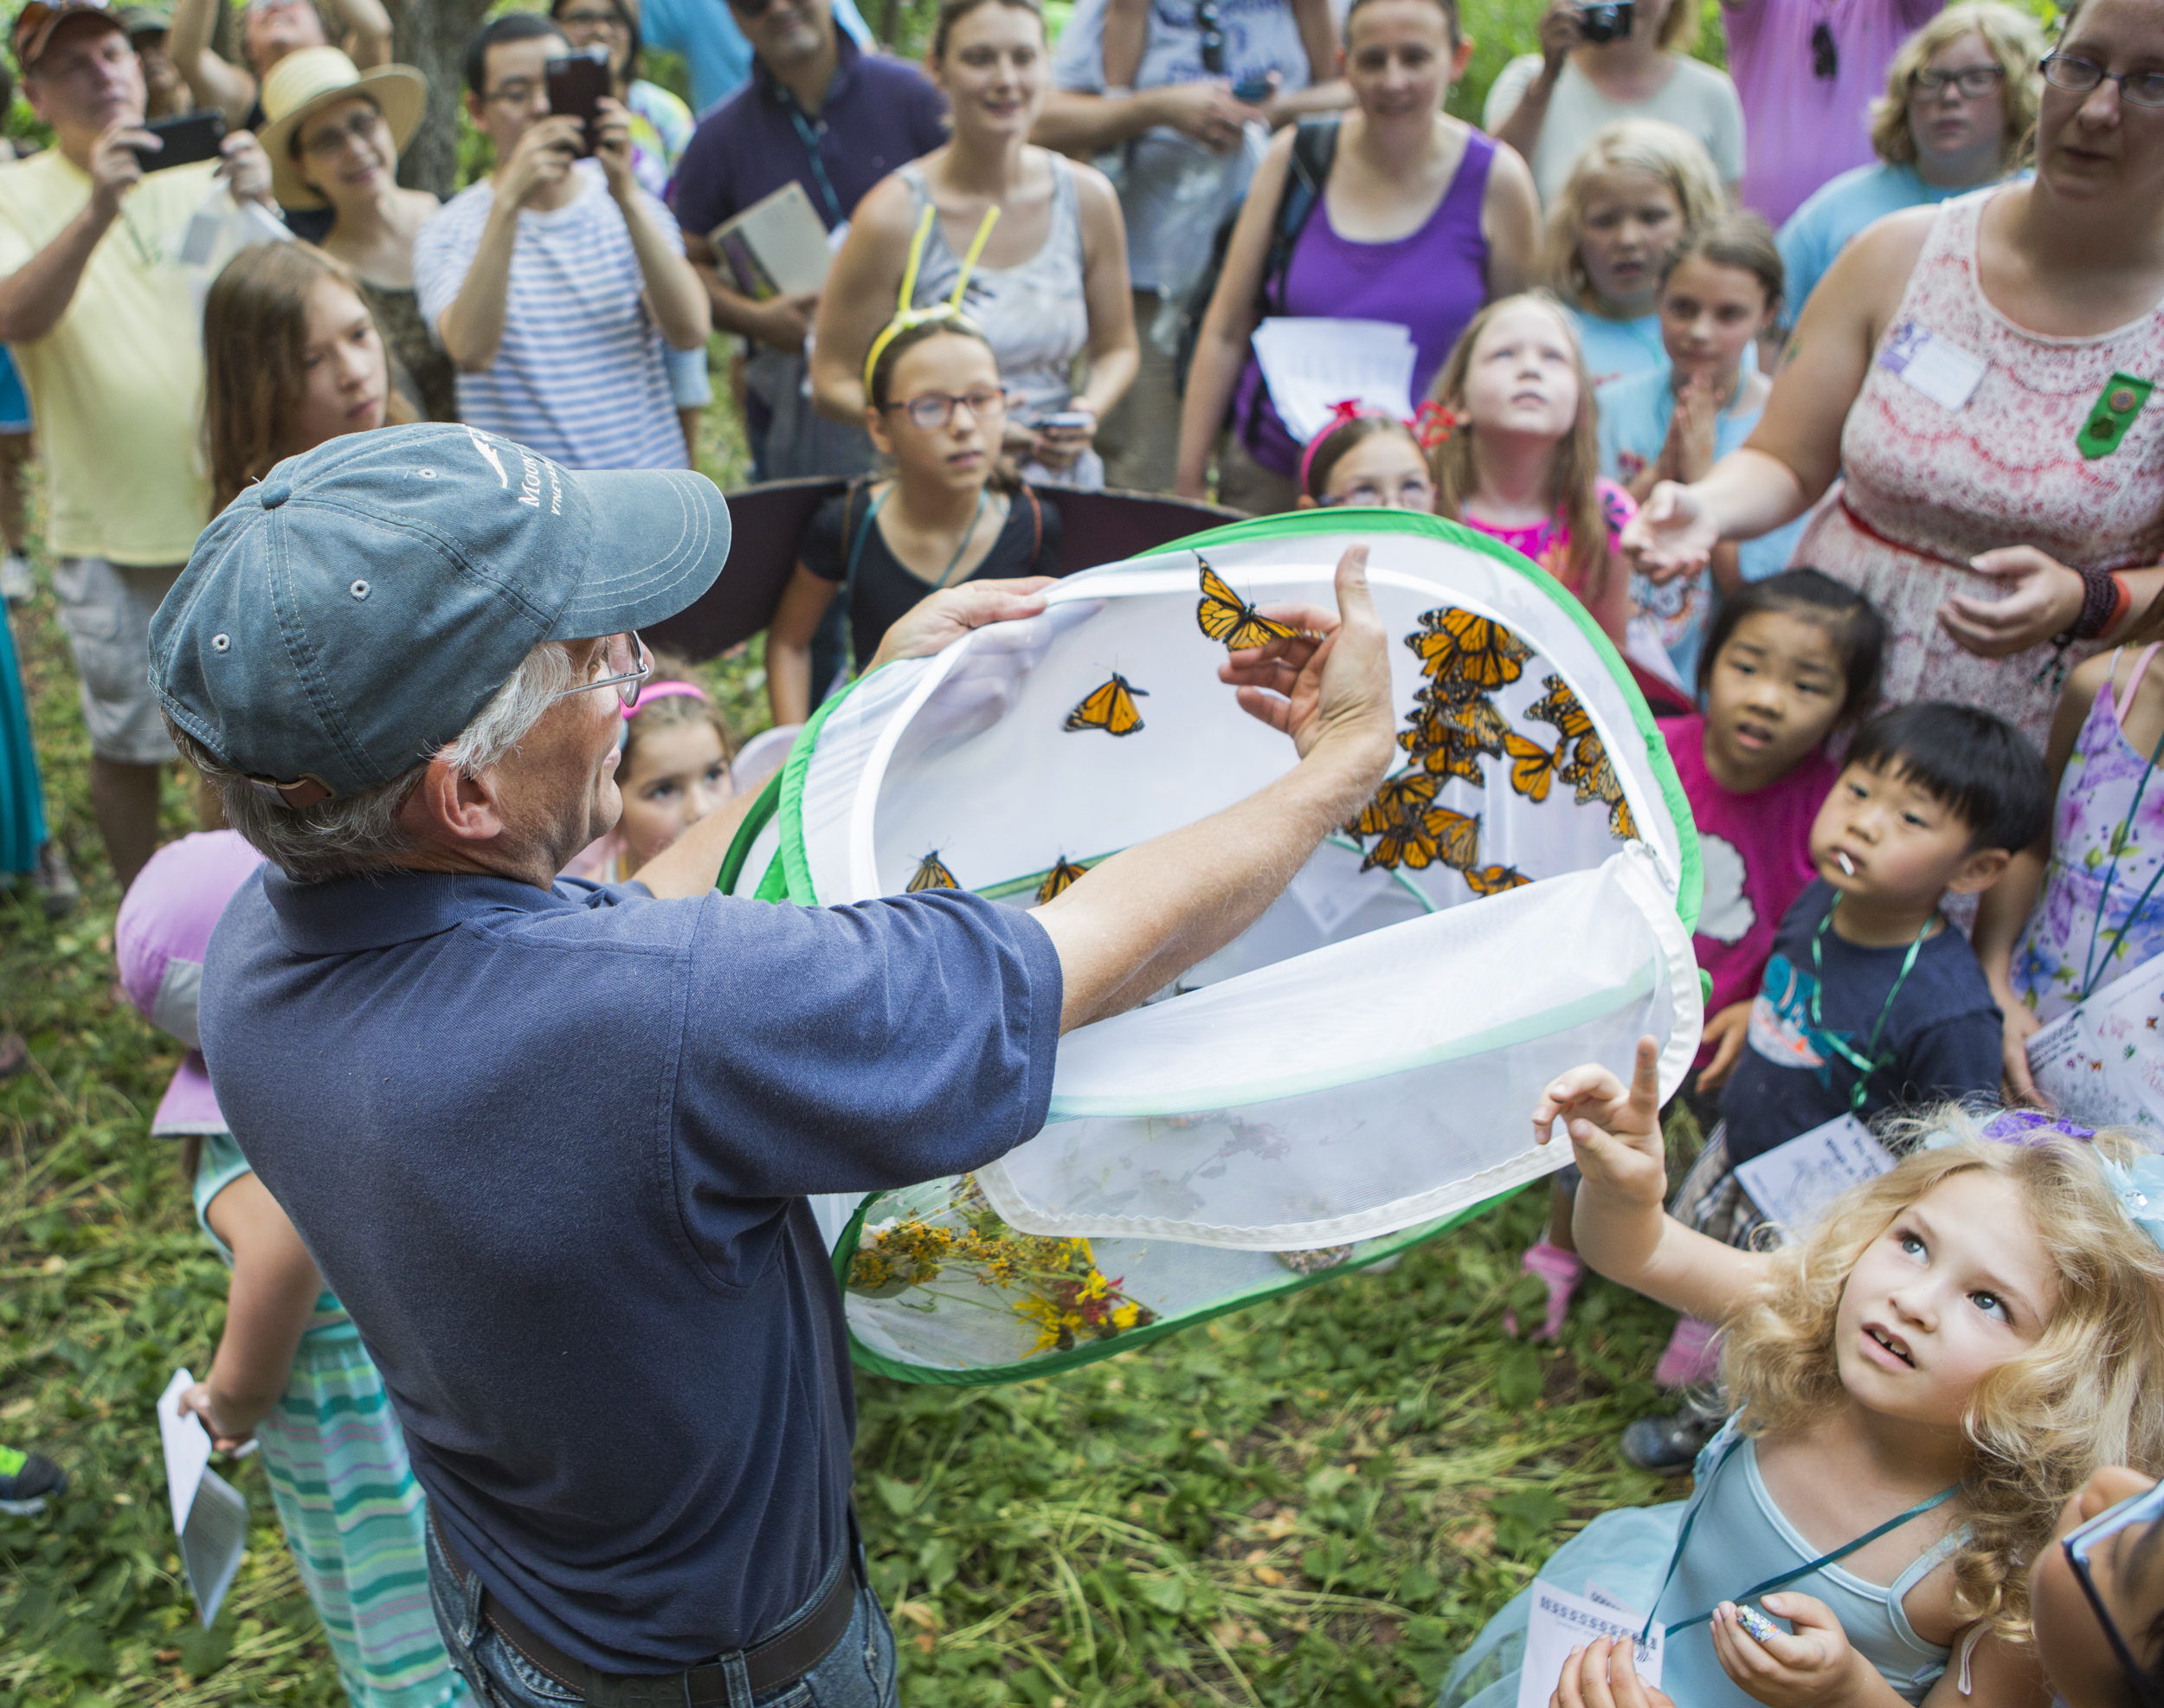 Penn State extension master gardener and community outreach coordinator Doug Ford helps the monarch butterflies from the mesh container during the butterfly release as part of Wings in the Park held at Snetsinger Butterfly Garden in Tom Tudek Memorial Park on Saturday, July 23, 2016.